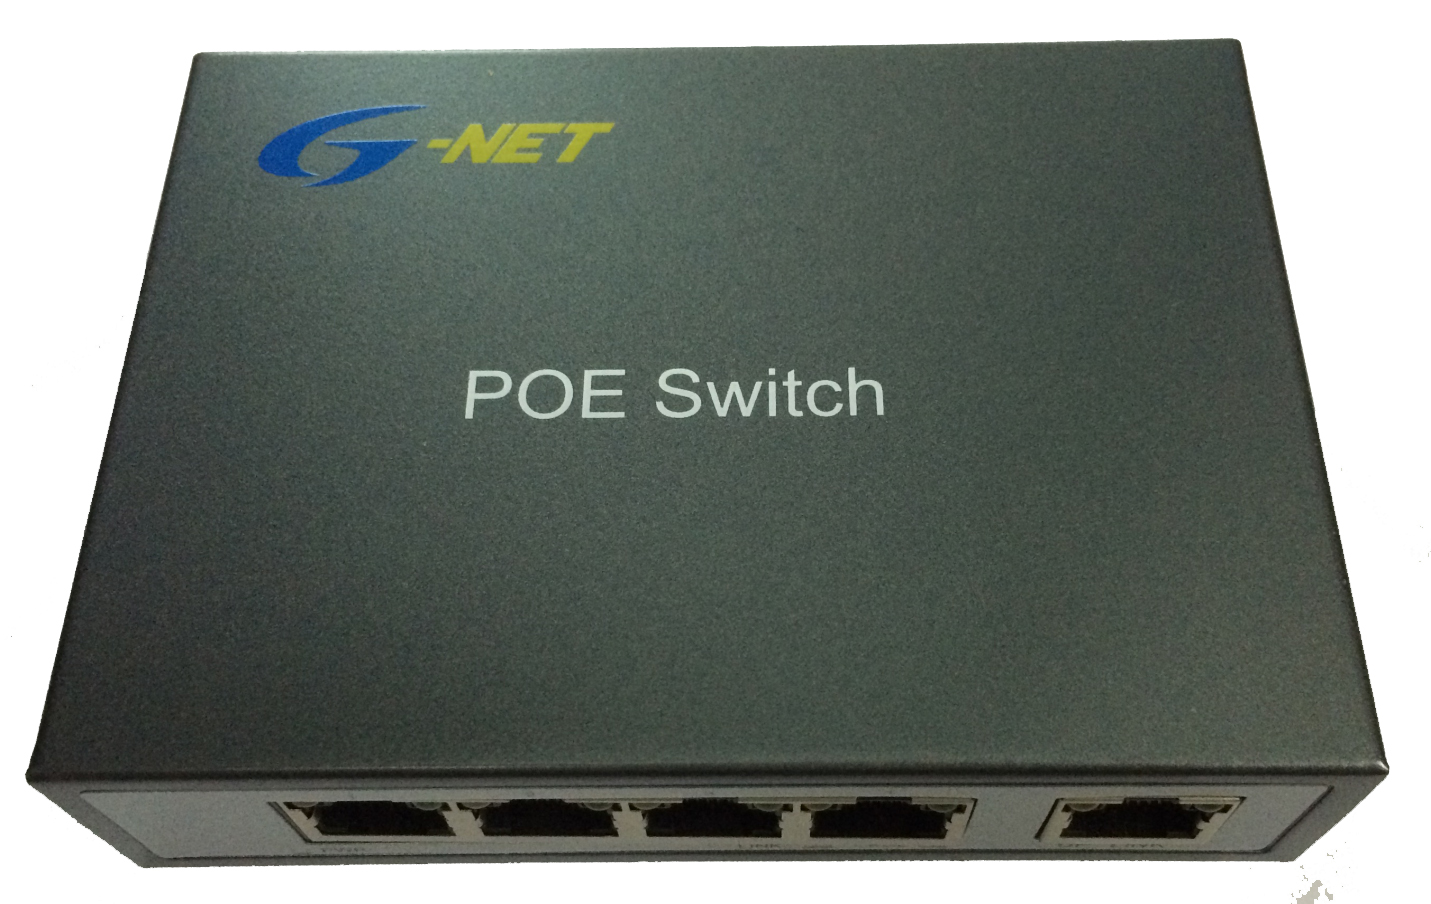 Switch-quang-4port-HHD-1505G/PGE-AF-10/100/1000Mbps